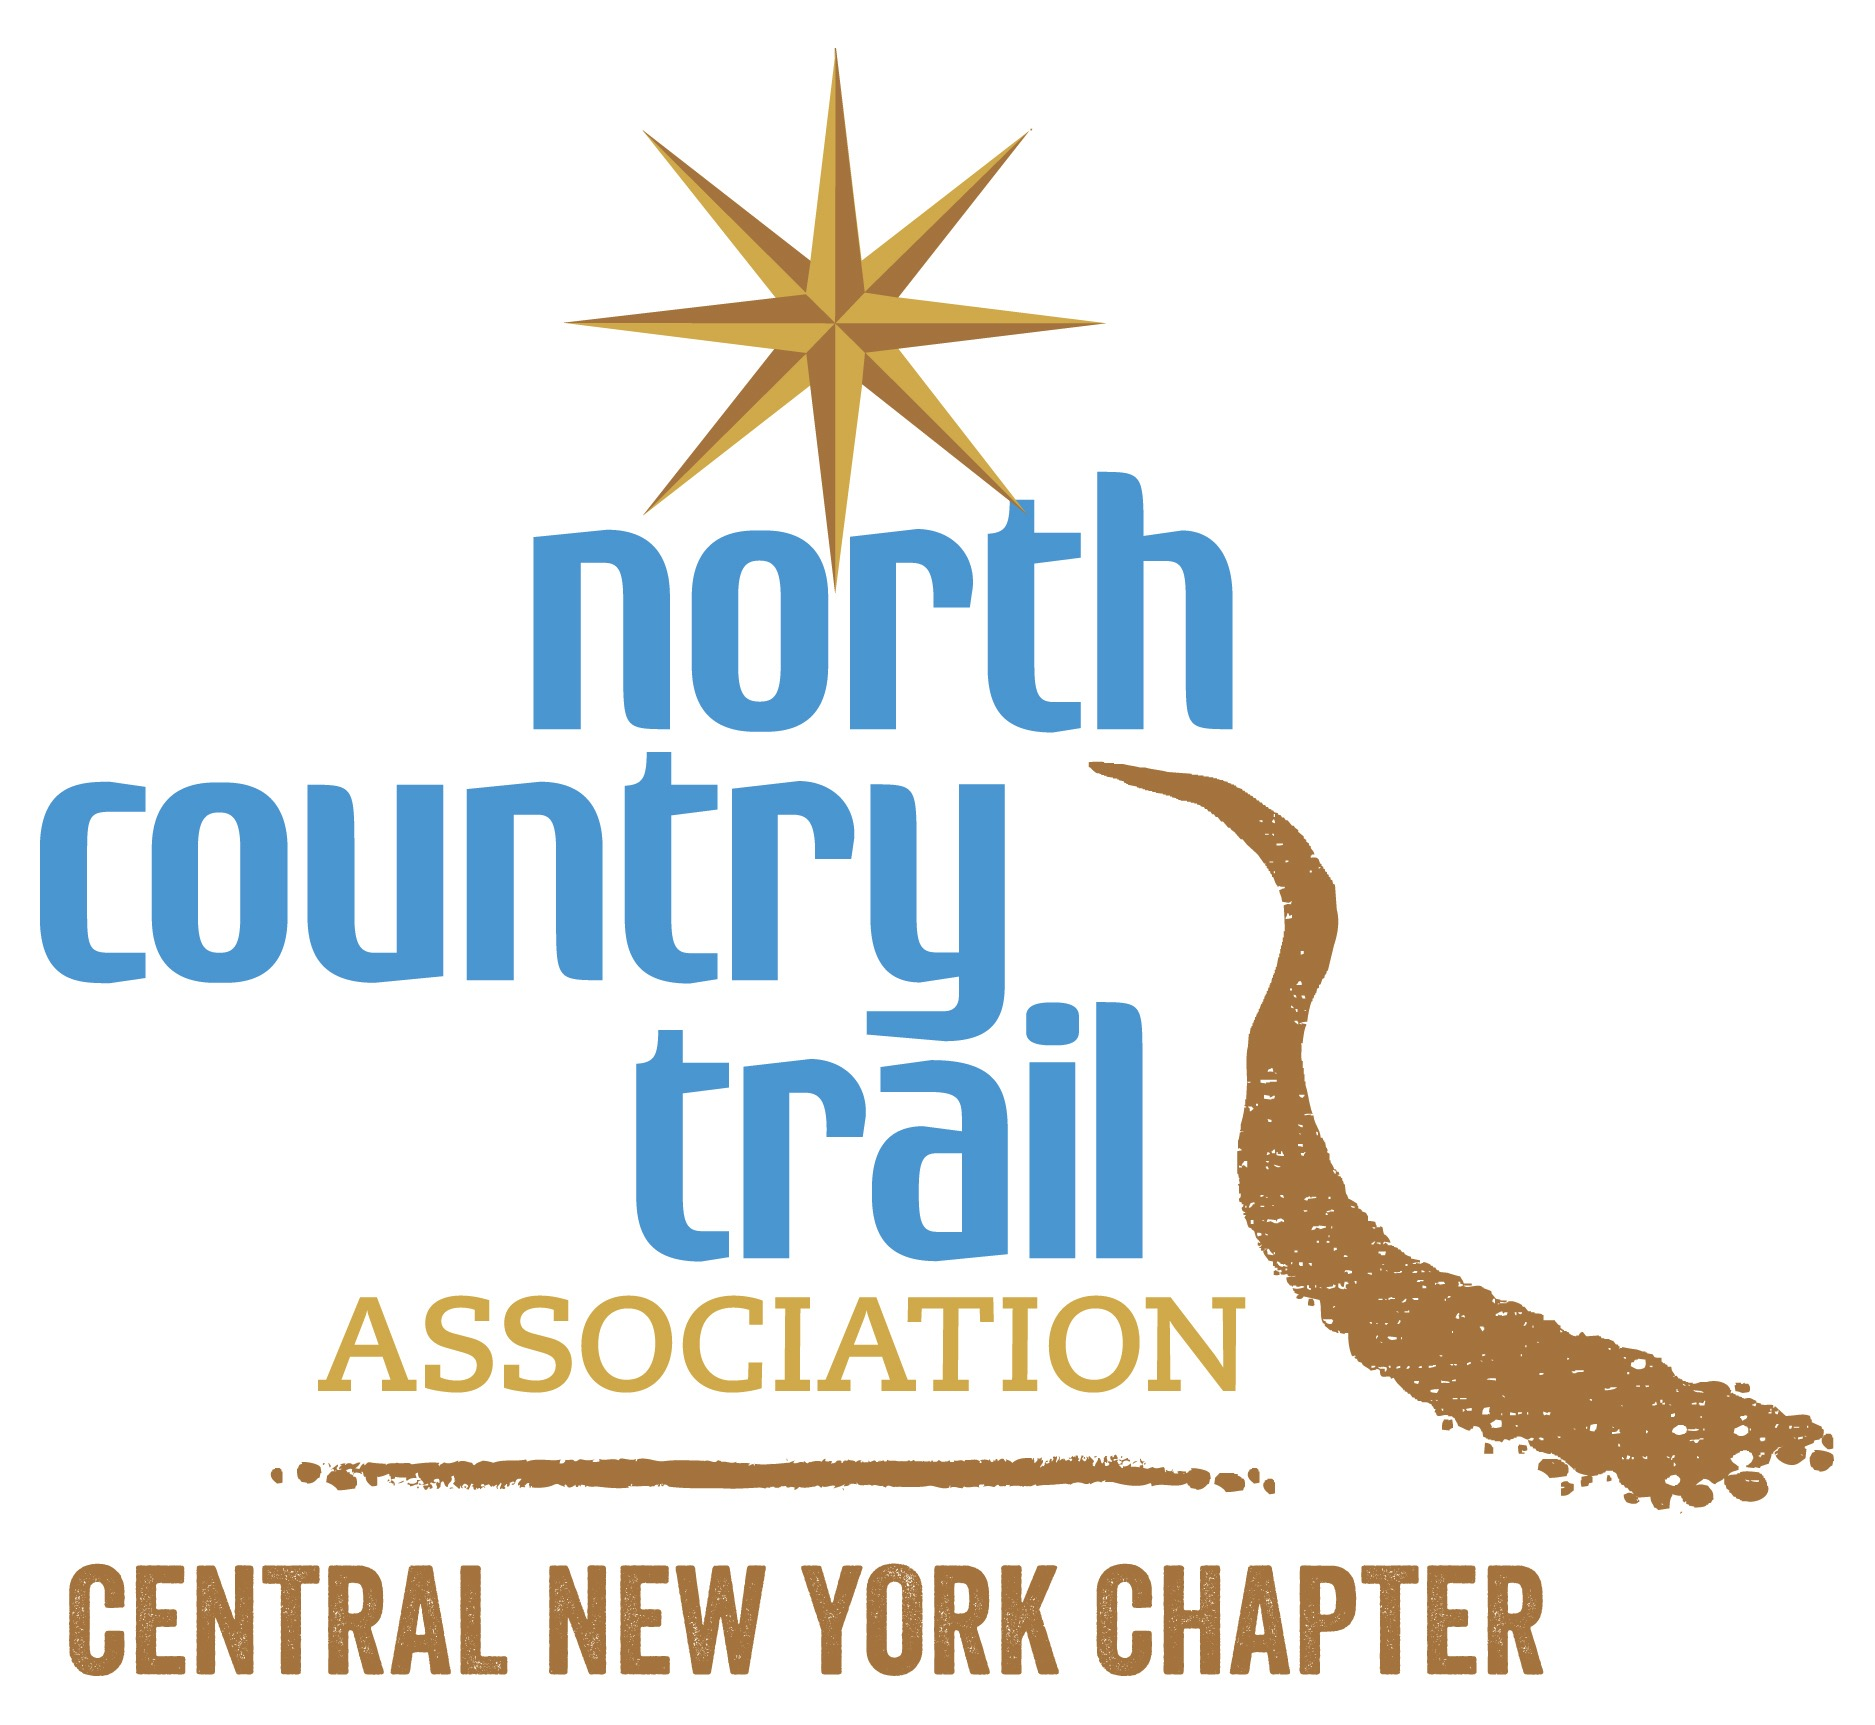 Northcountry org